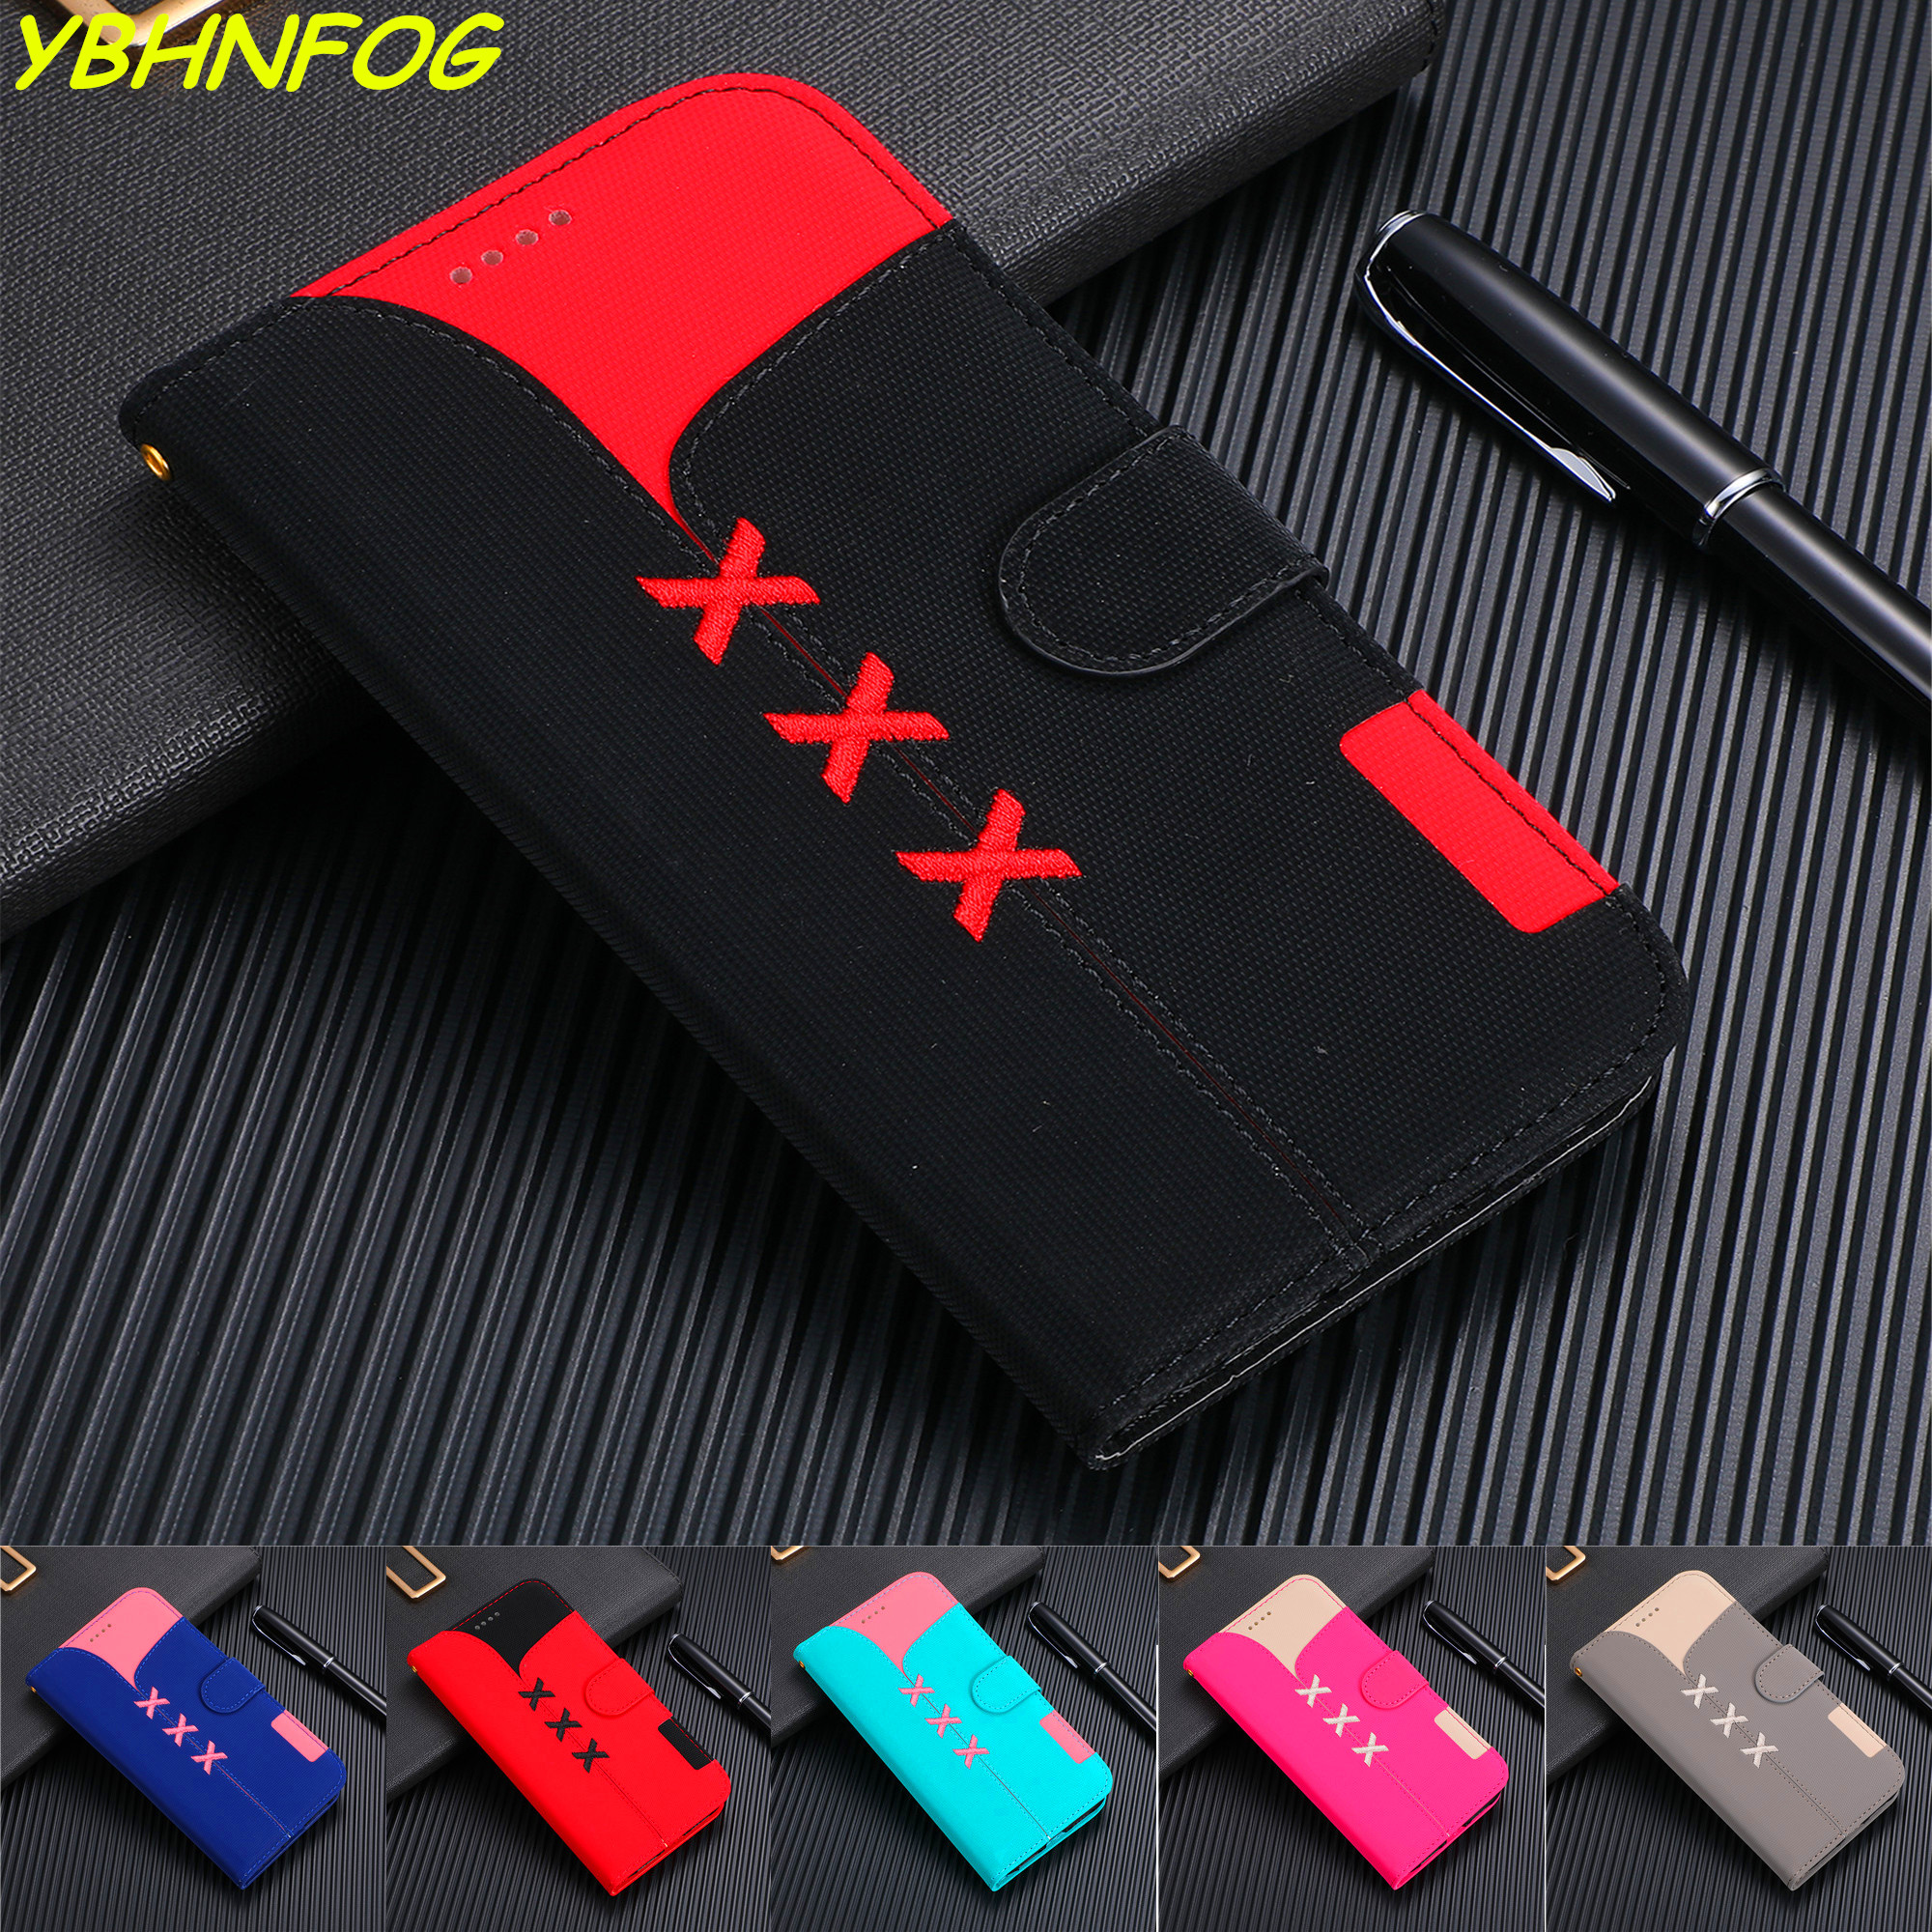 S8 S9 S10E Plus PU Leather Wallet <font><b>Case</b></font> For <font><b>Samsung</b></font> <font><b>Galaxy</b></font> A6 A7 <font><b>A8</b></font> A9 J4 J6 <font><b>2018</b></font> J3 J5 J7 A20 A30 A40 A50 A70 <font><b>Flip</b></font> Cover Coque image